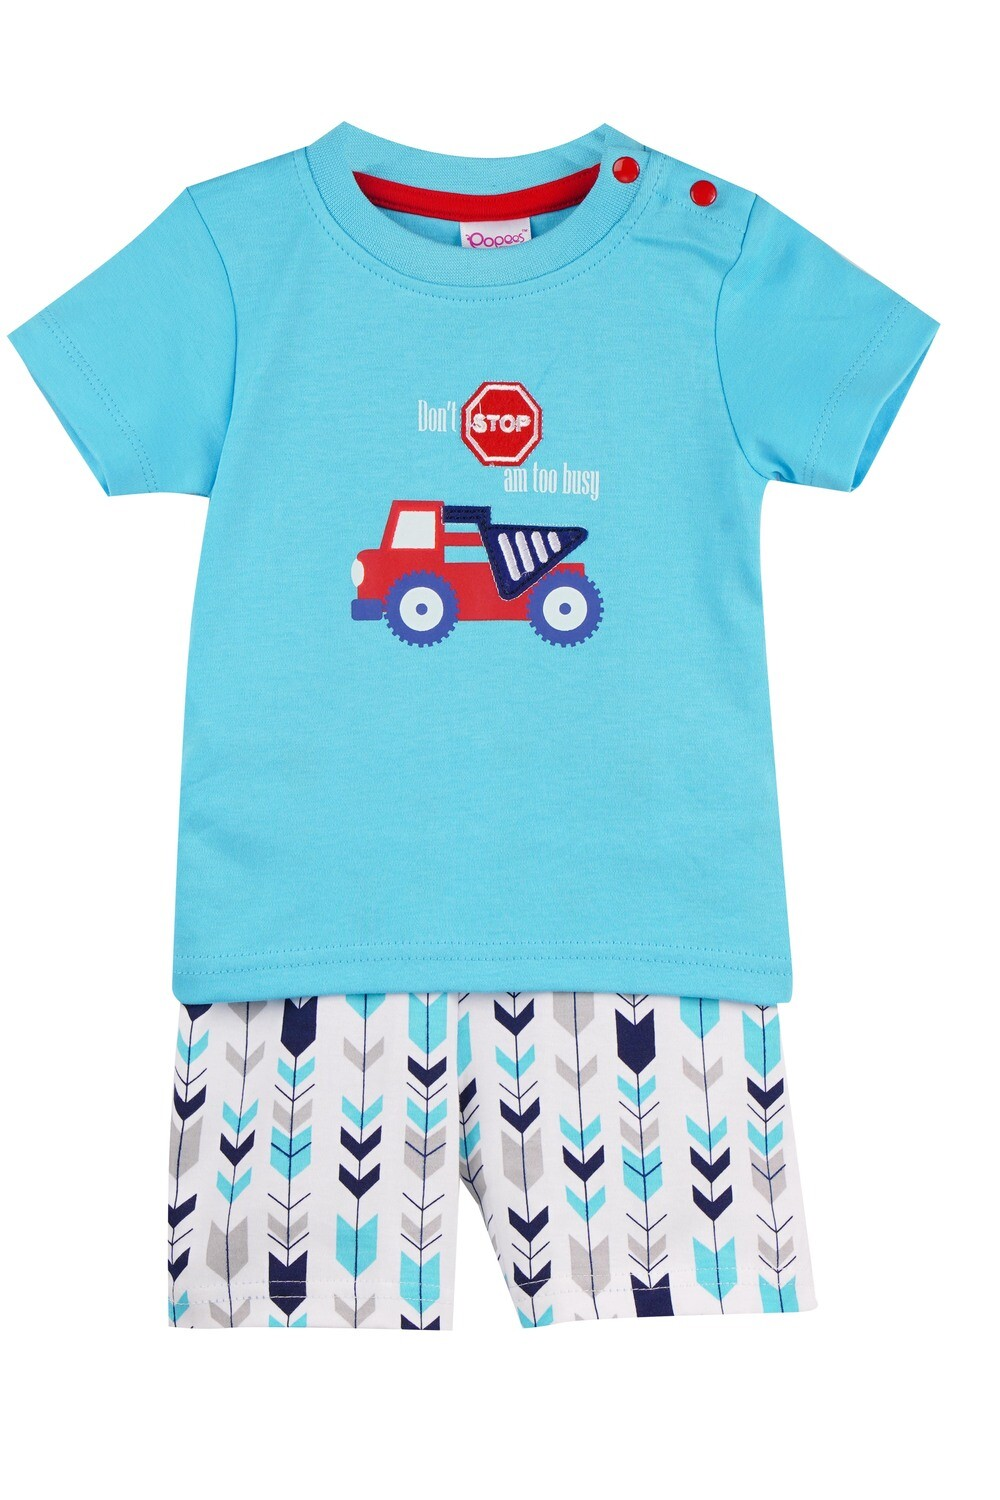 WARREN Sky Blue Top and Trouser Half Sleeves for Baby Boys